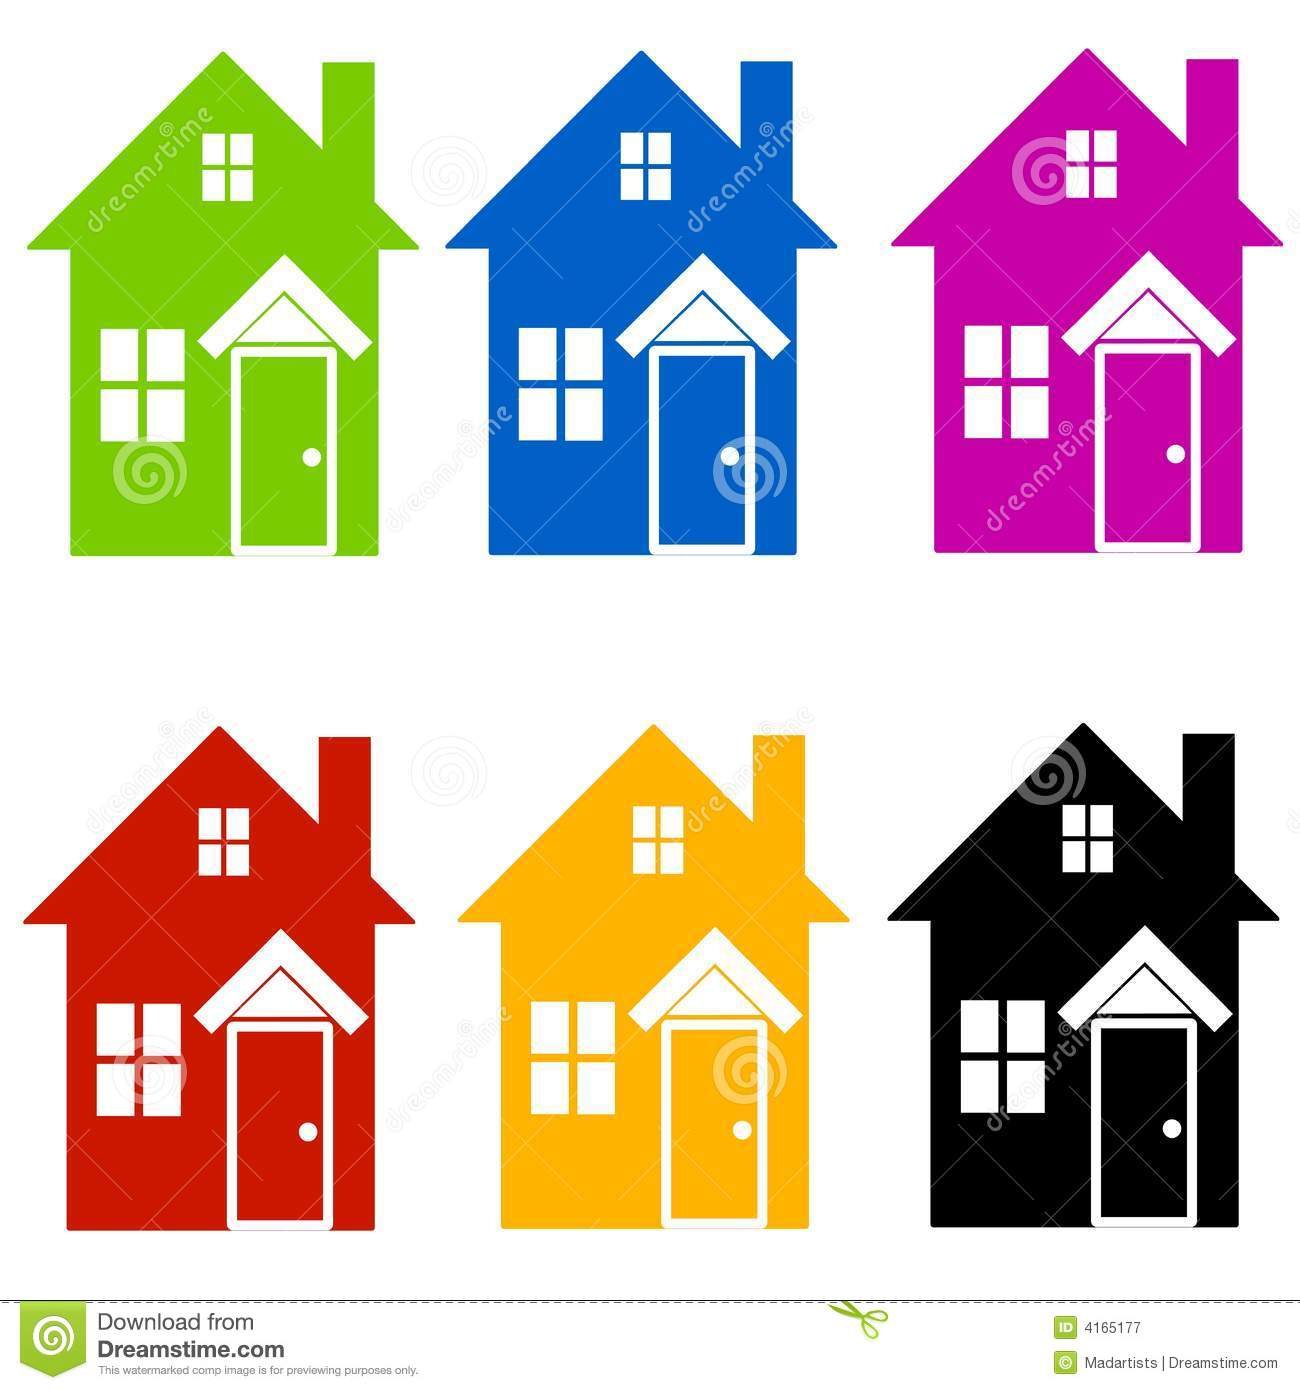 colourful house silhouettes clip art stock illustration rh dreamstime com free clip art house key free clip art house painting